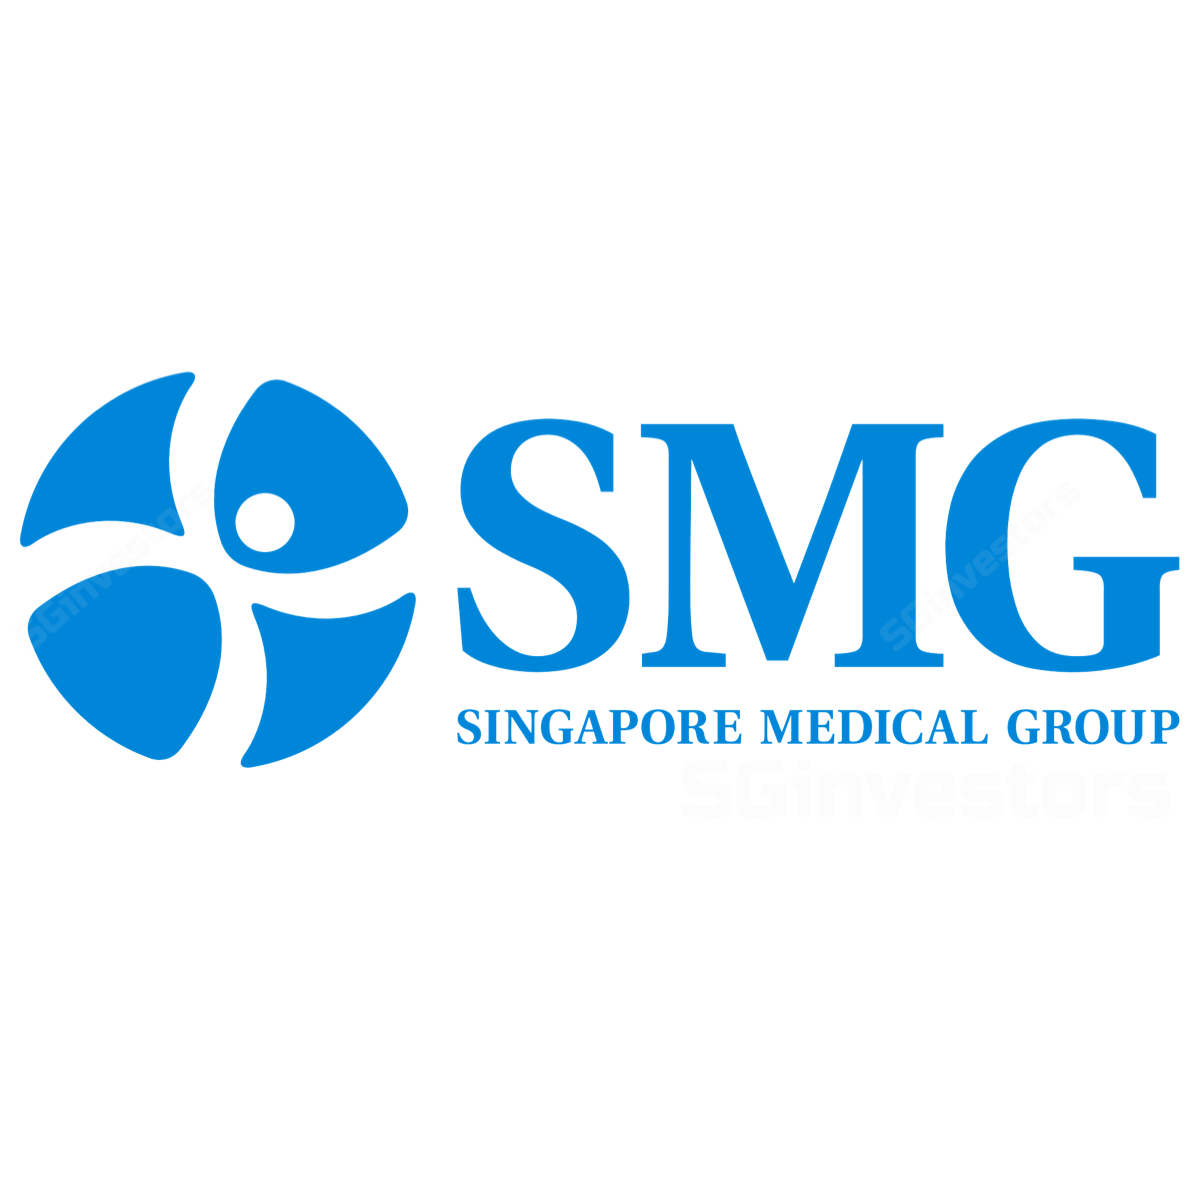 Singapore Medical Group (SMG SP) - Maybank Kim Eng 2018-05-15: A Good Start